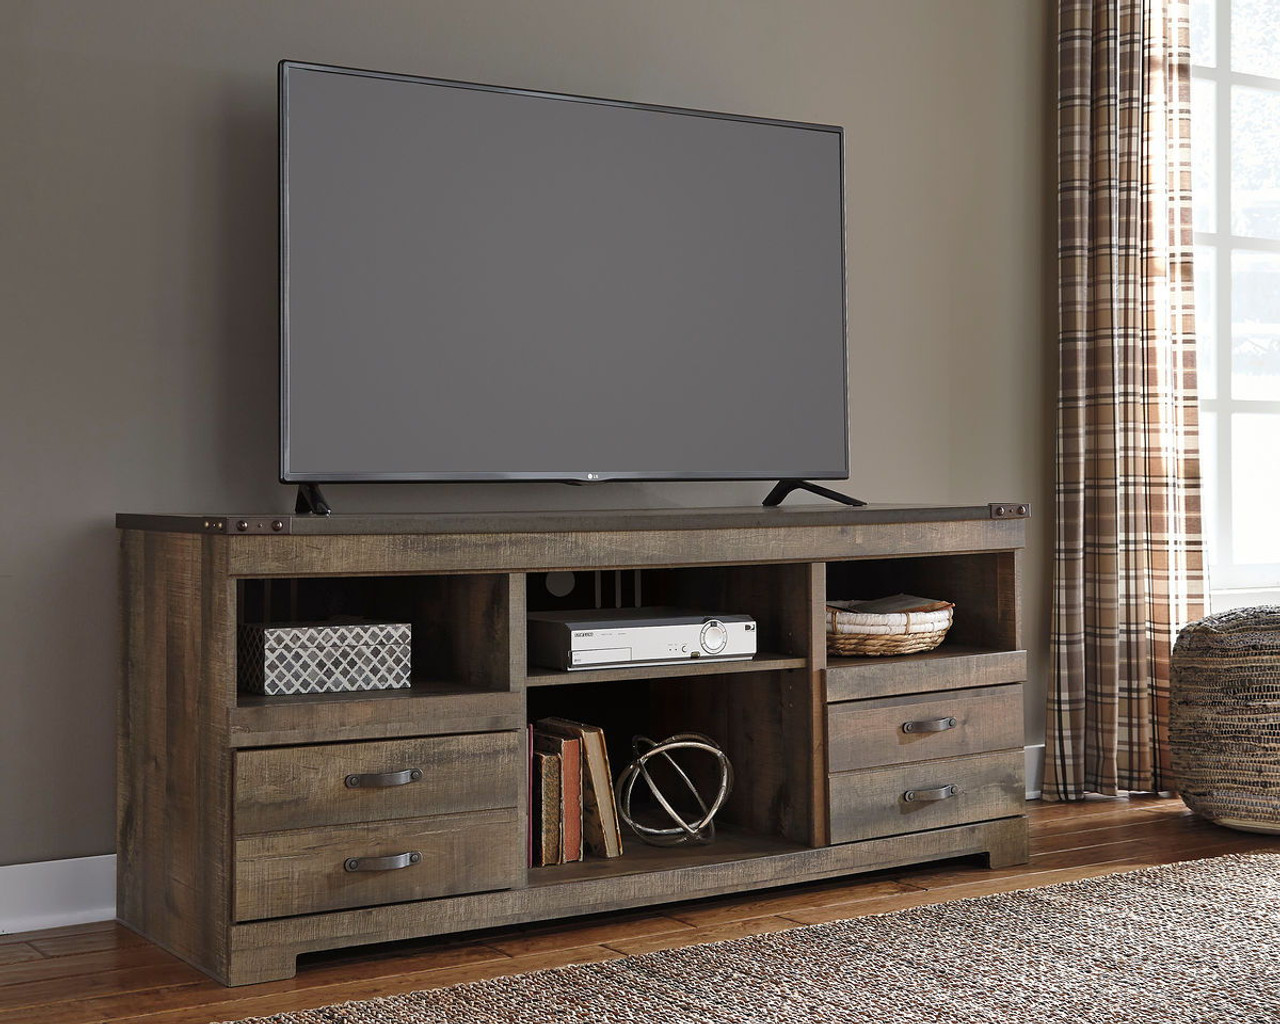 The Trinell Brown Lg Tv Stand W Fireplace Option Available At Logan